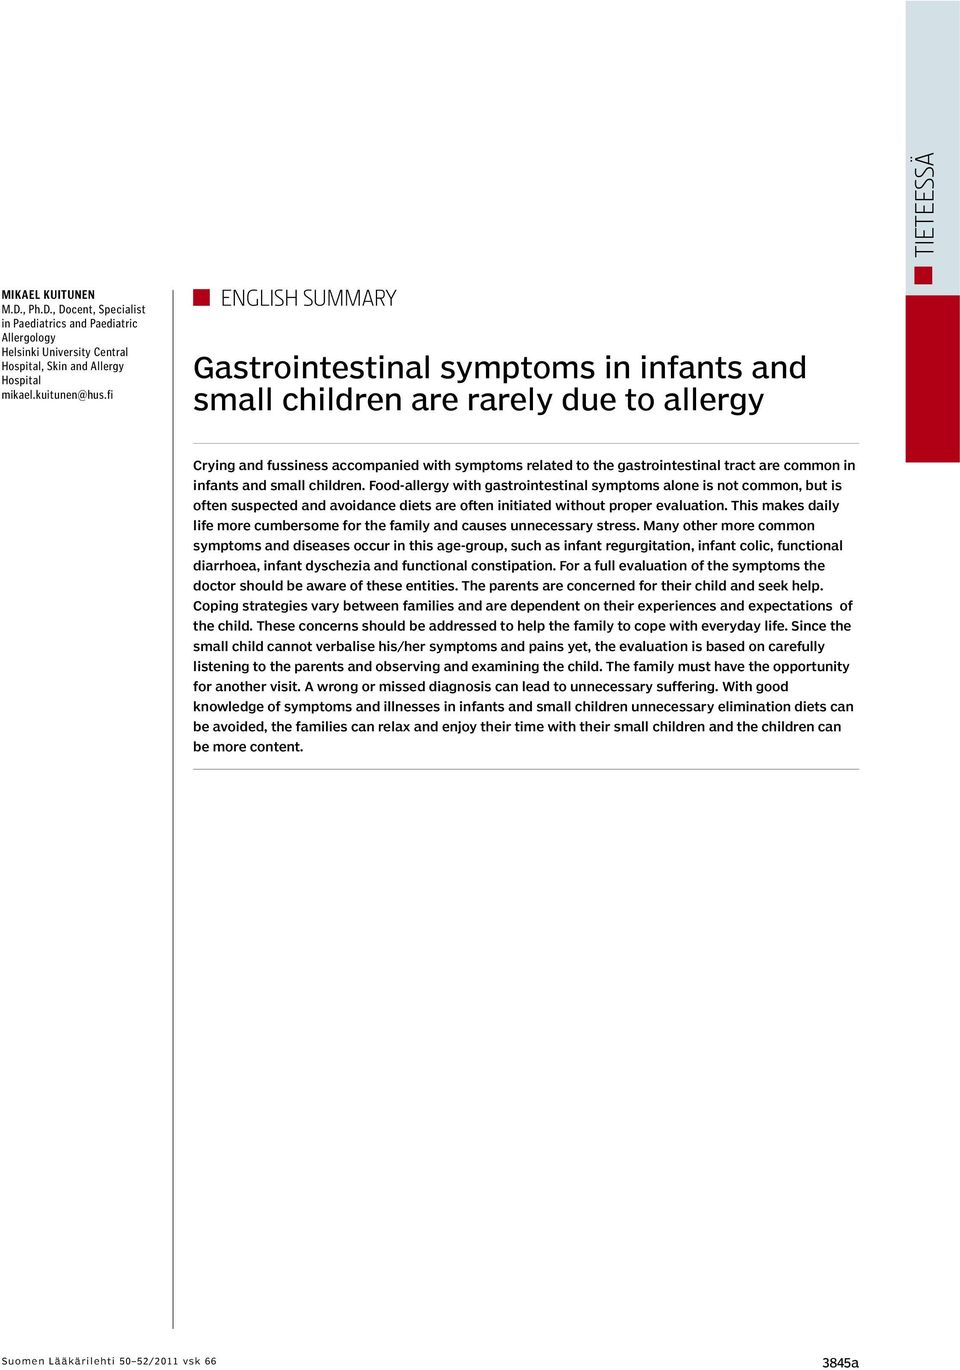 infants and small children. Food-allergy with gastrointestinal symptoms alone is not common, but is often suspected and avoidance diets are often initiated without proper evaluation.